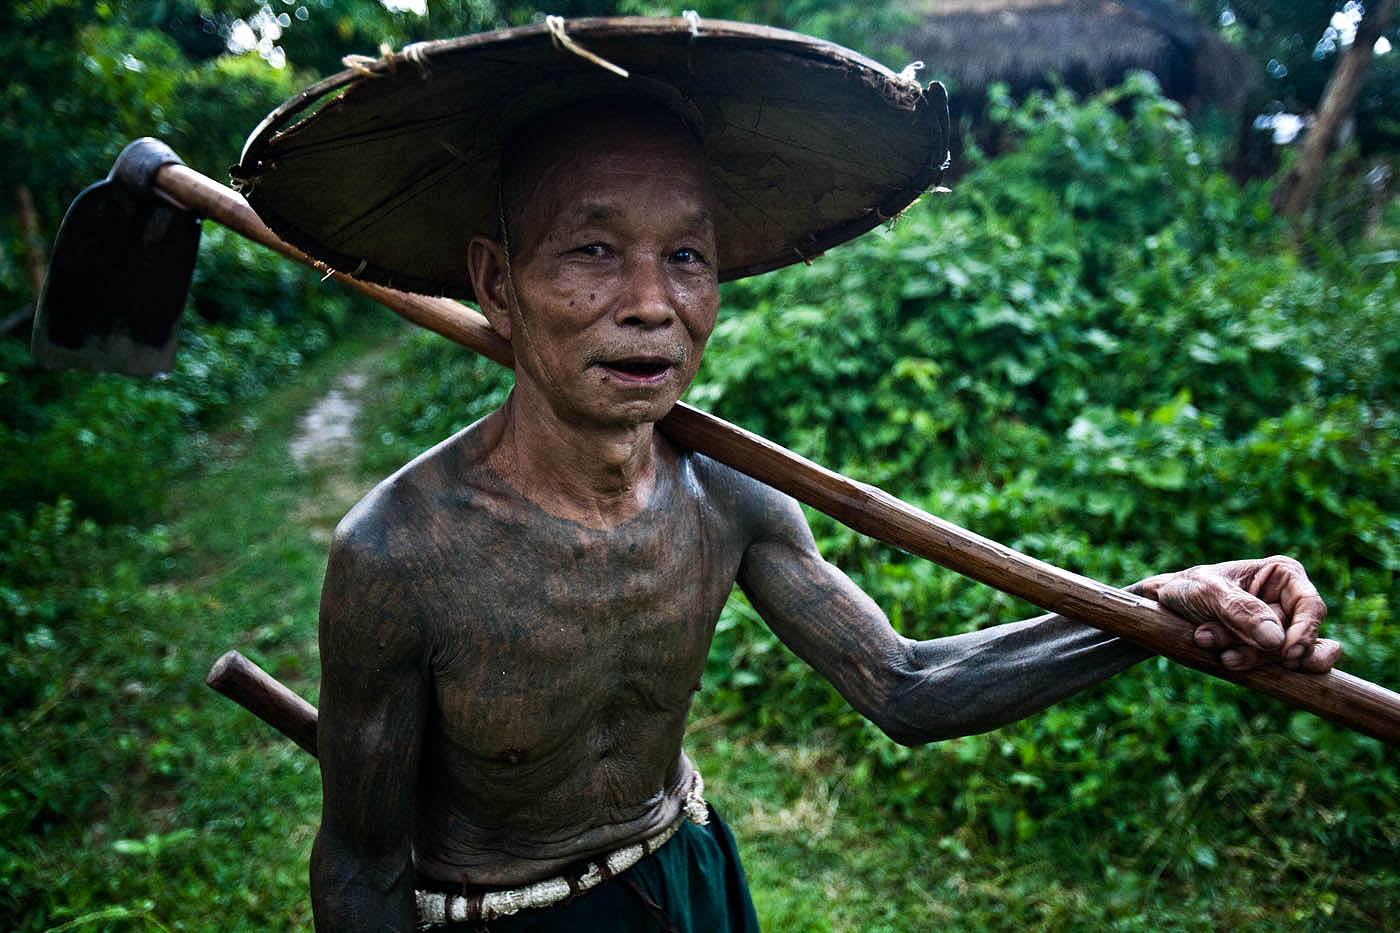 Farmer and Traditional Medicine Man, Hsipaw.